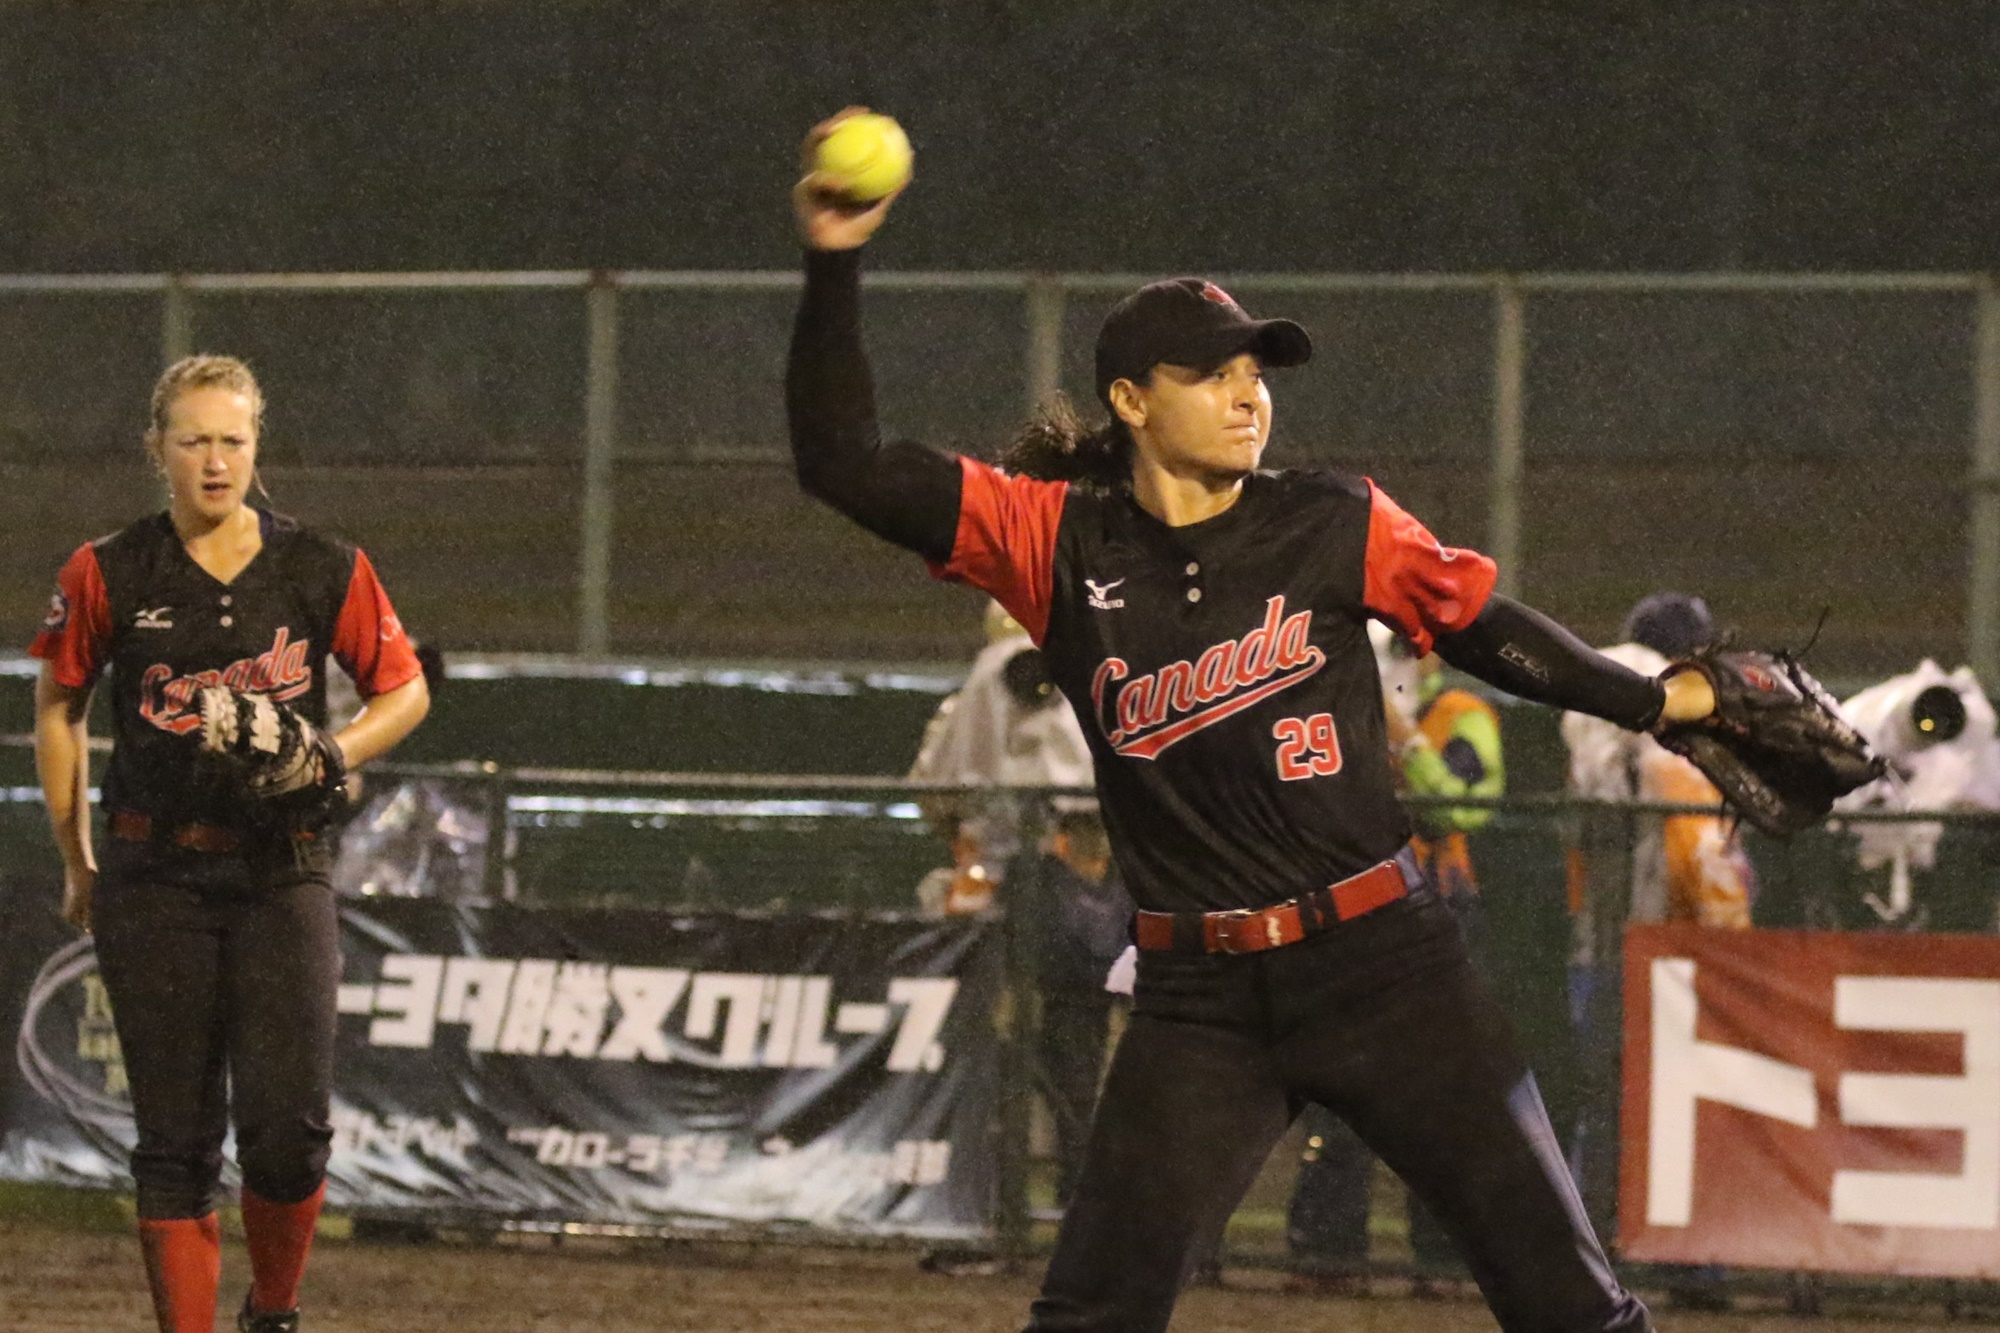 Eujenna Caira started the game for Canada against Japan